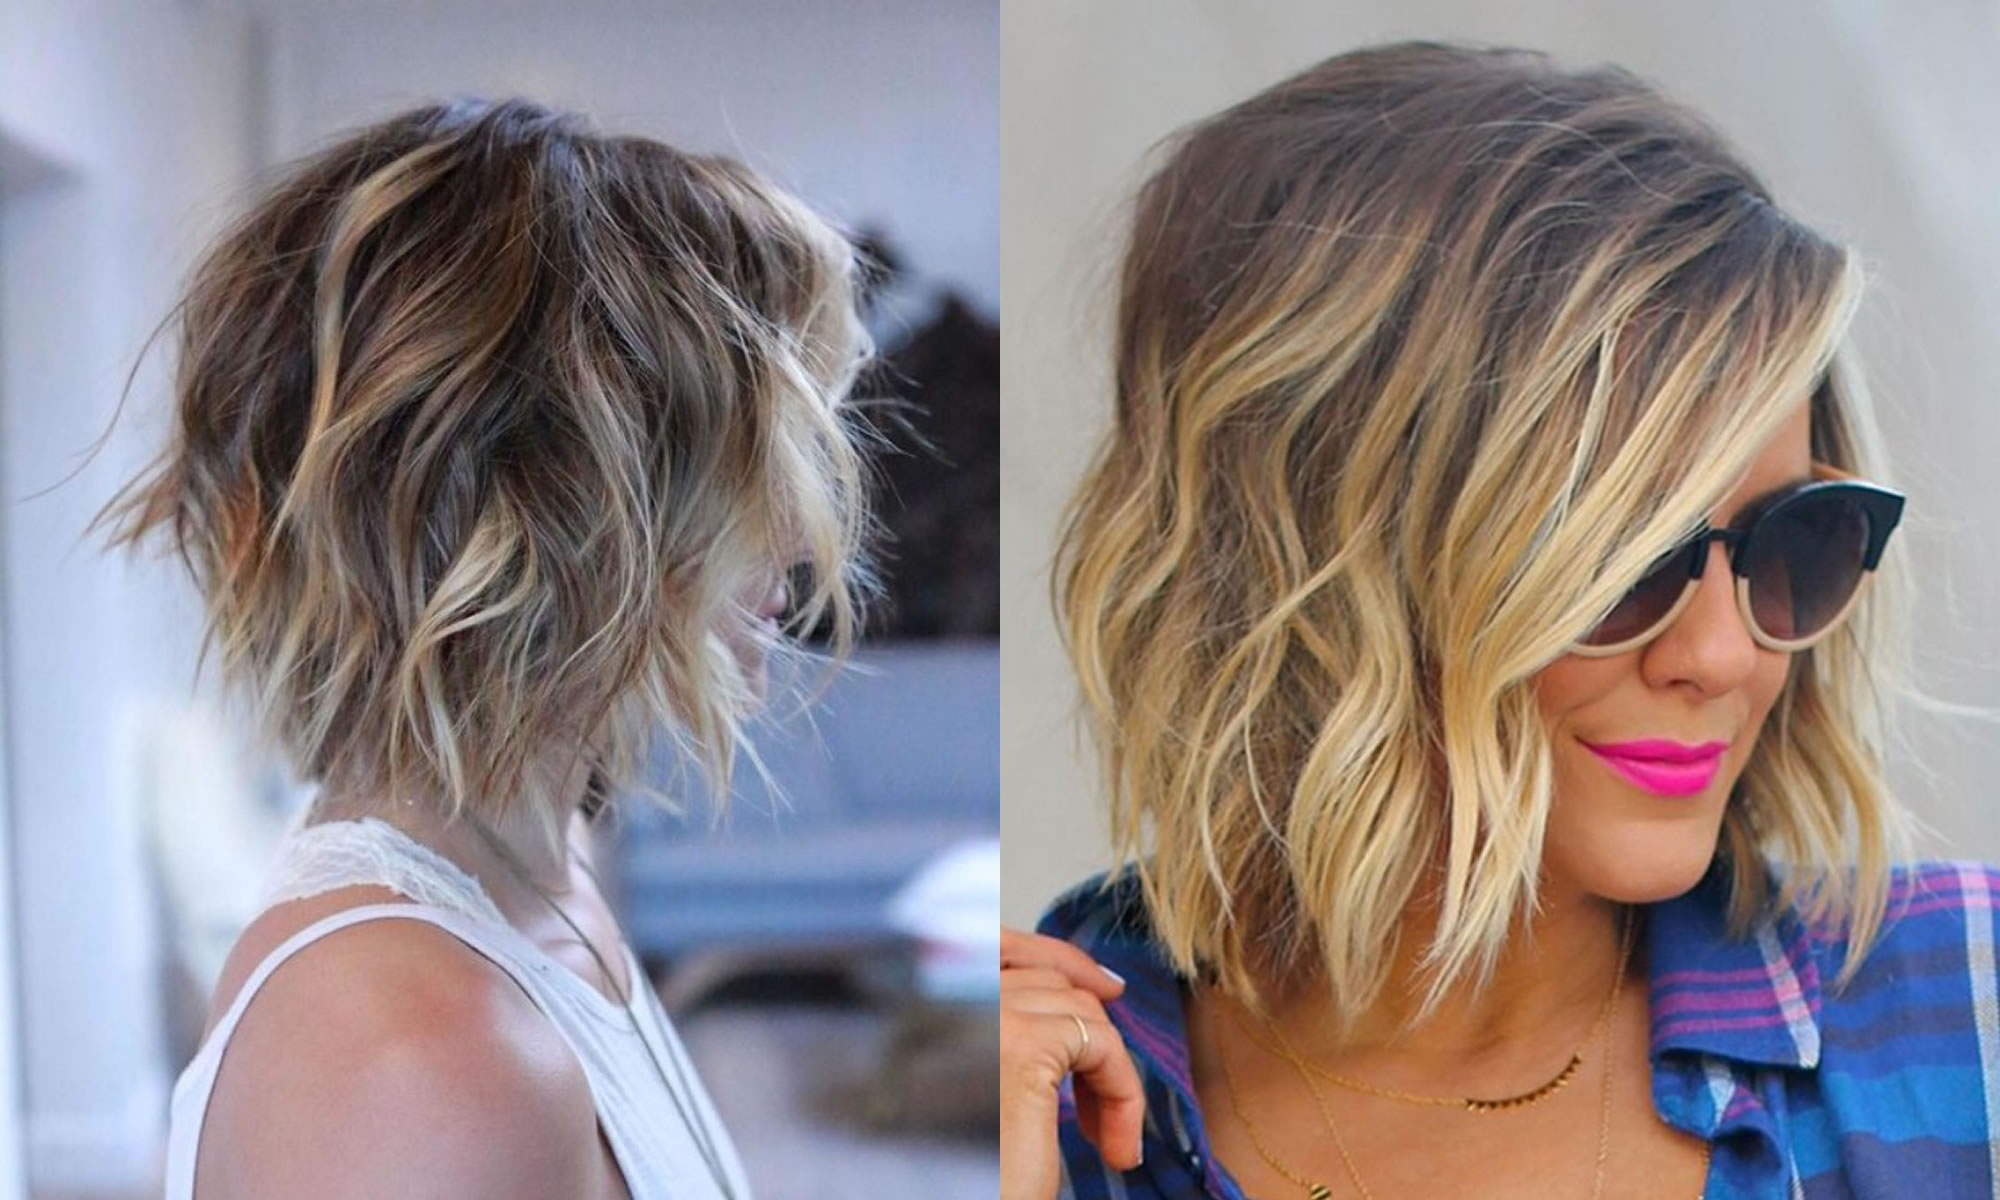 The Best 50 Balayage Bob Hairstyles (short+long) & Highlights – Page Regarding Popular Shaggy Pixie Hairstyles With Balayage Highlights (View 3 of 20)